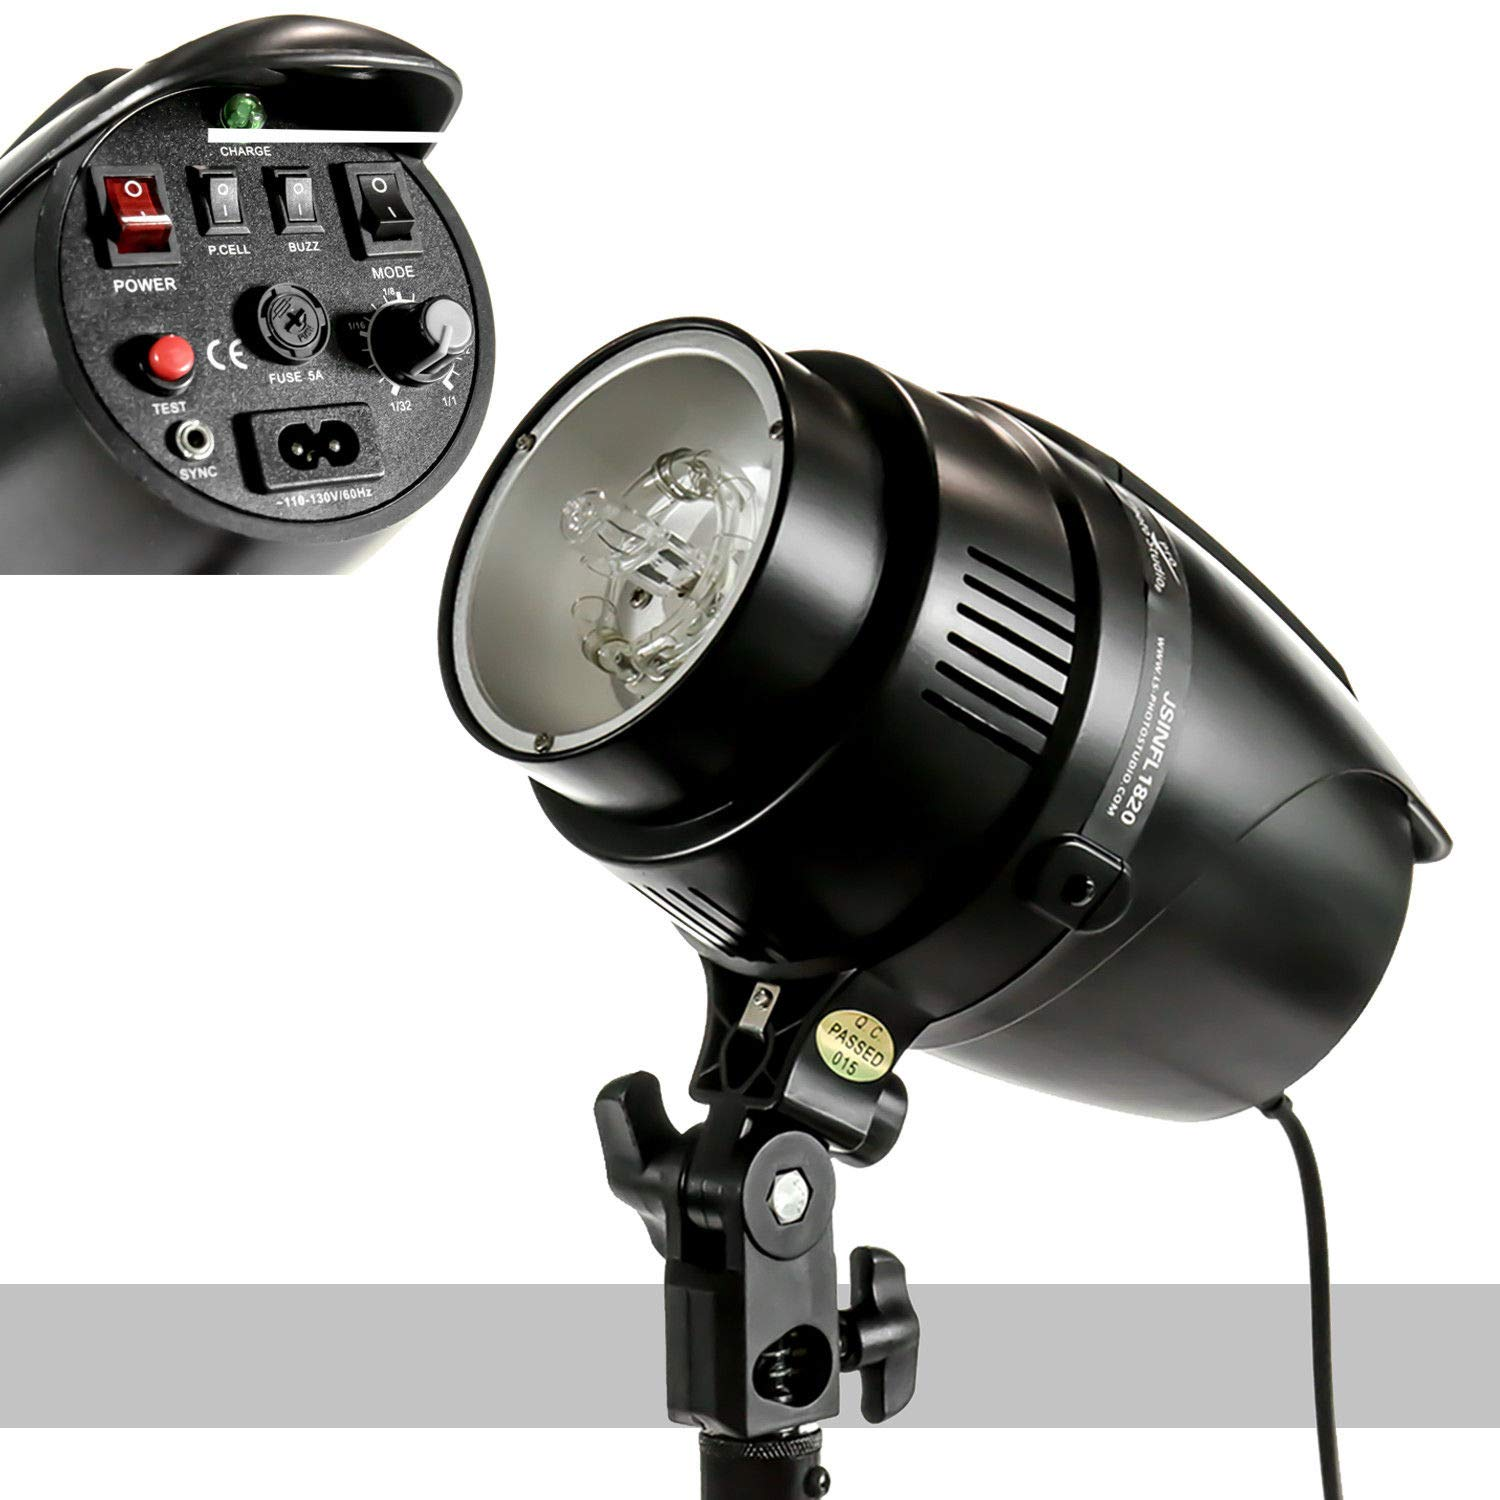 v-1 Studio Photo Studio Flash/Strobe Light Holder 180Watts with Ebook by oldzon